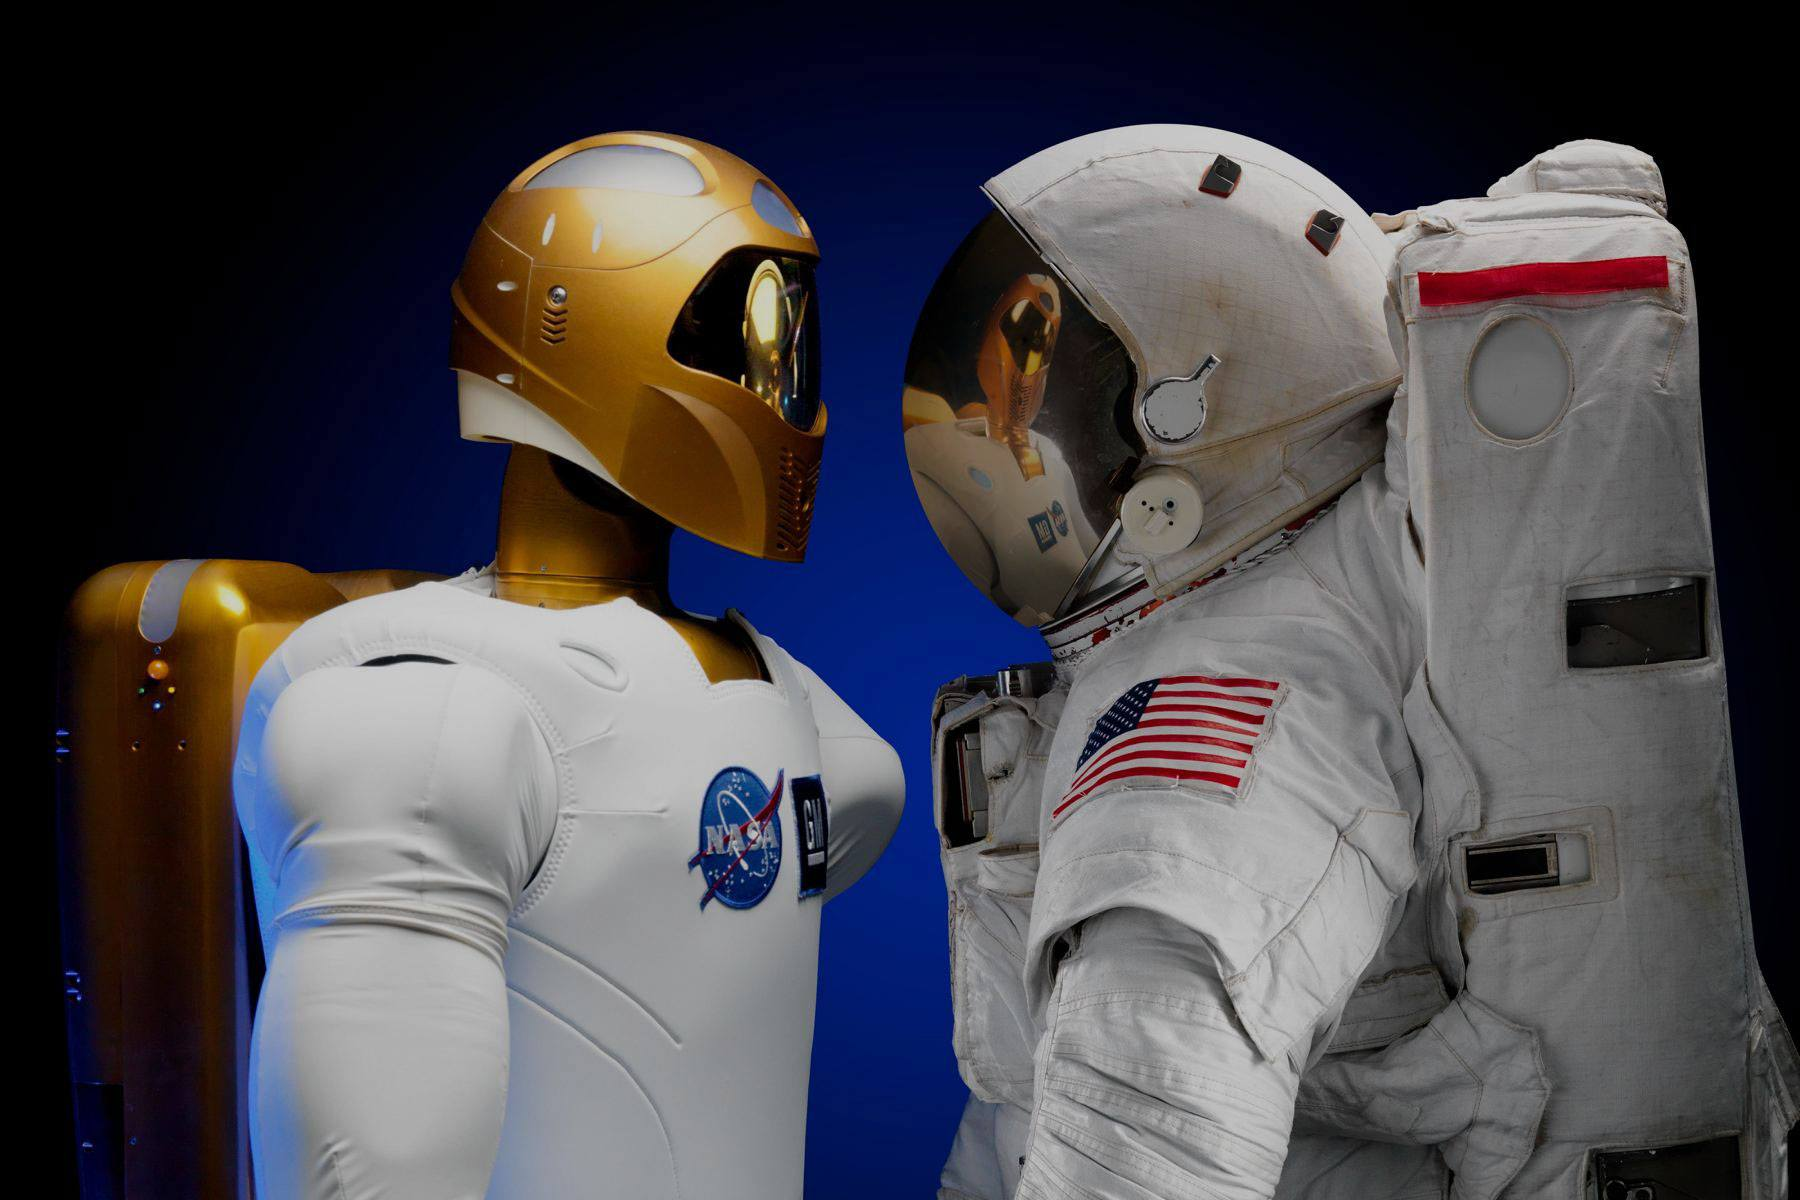 astronaut-artificial-intellgence-kuenstliche-intelligenz-robot-the-tean-3